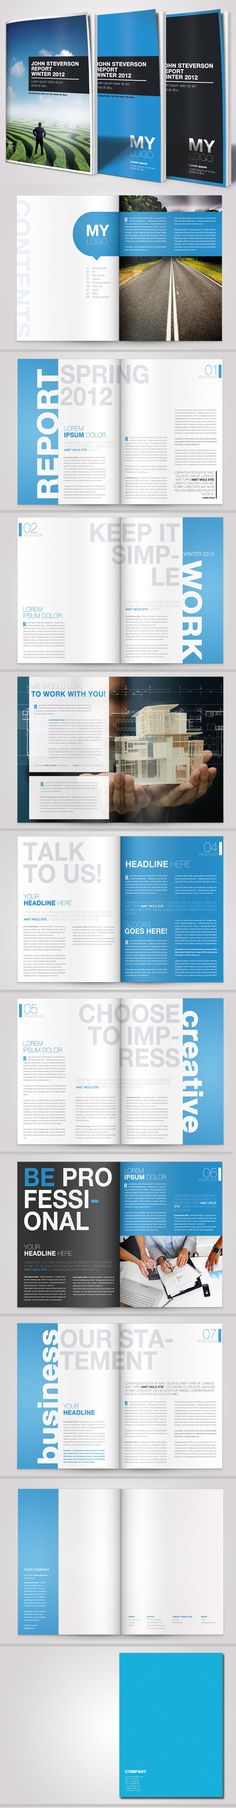 A4 Business Brochure Vol. 03 on Behance